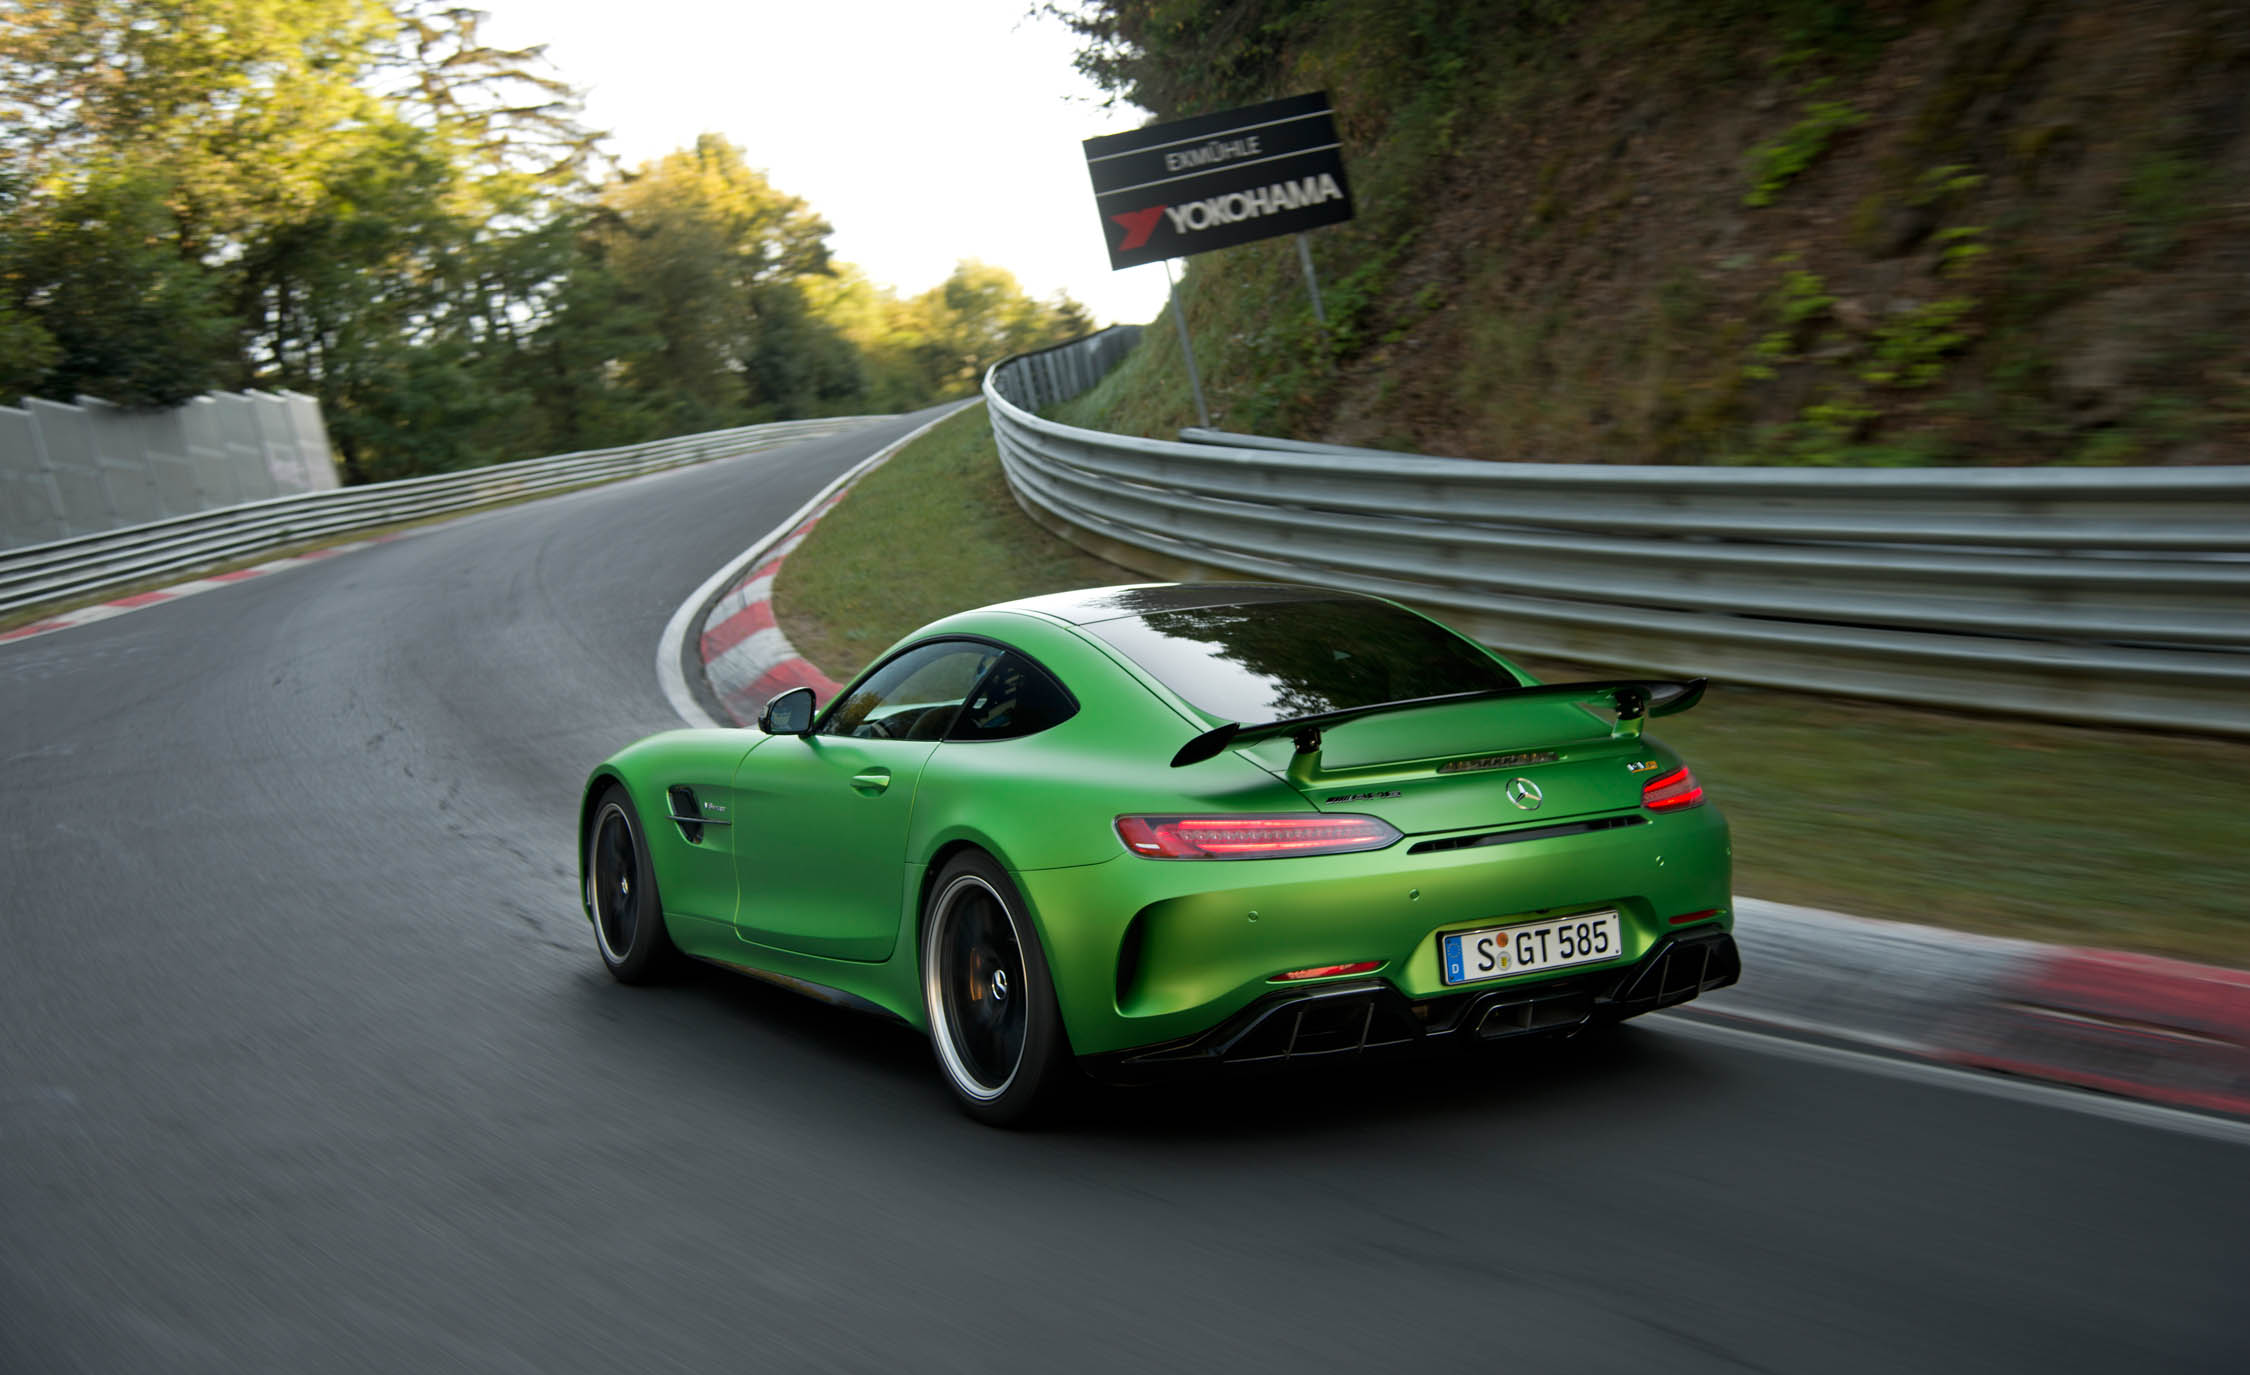 2017 Mercedes Amg Gt R Curcuit Test Rear Preview (View 21 of 22)